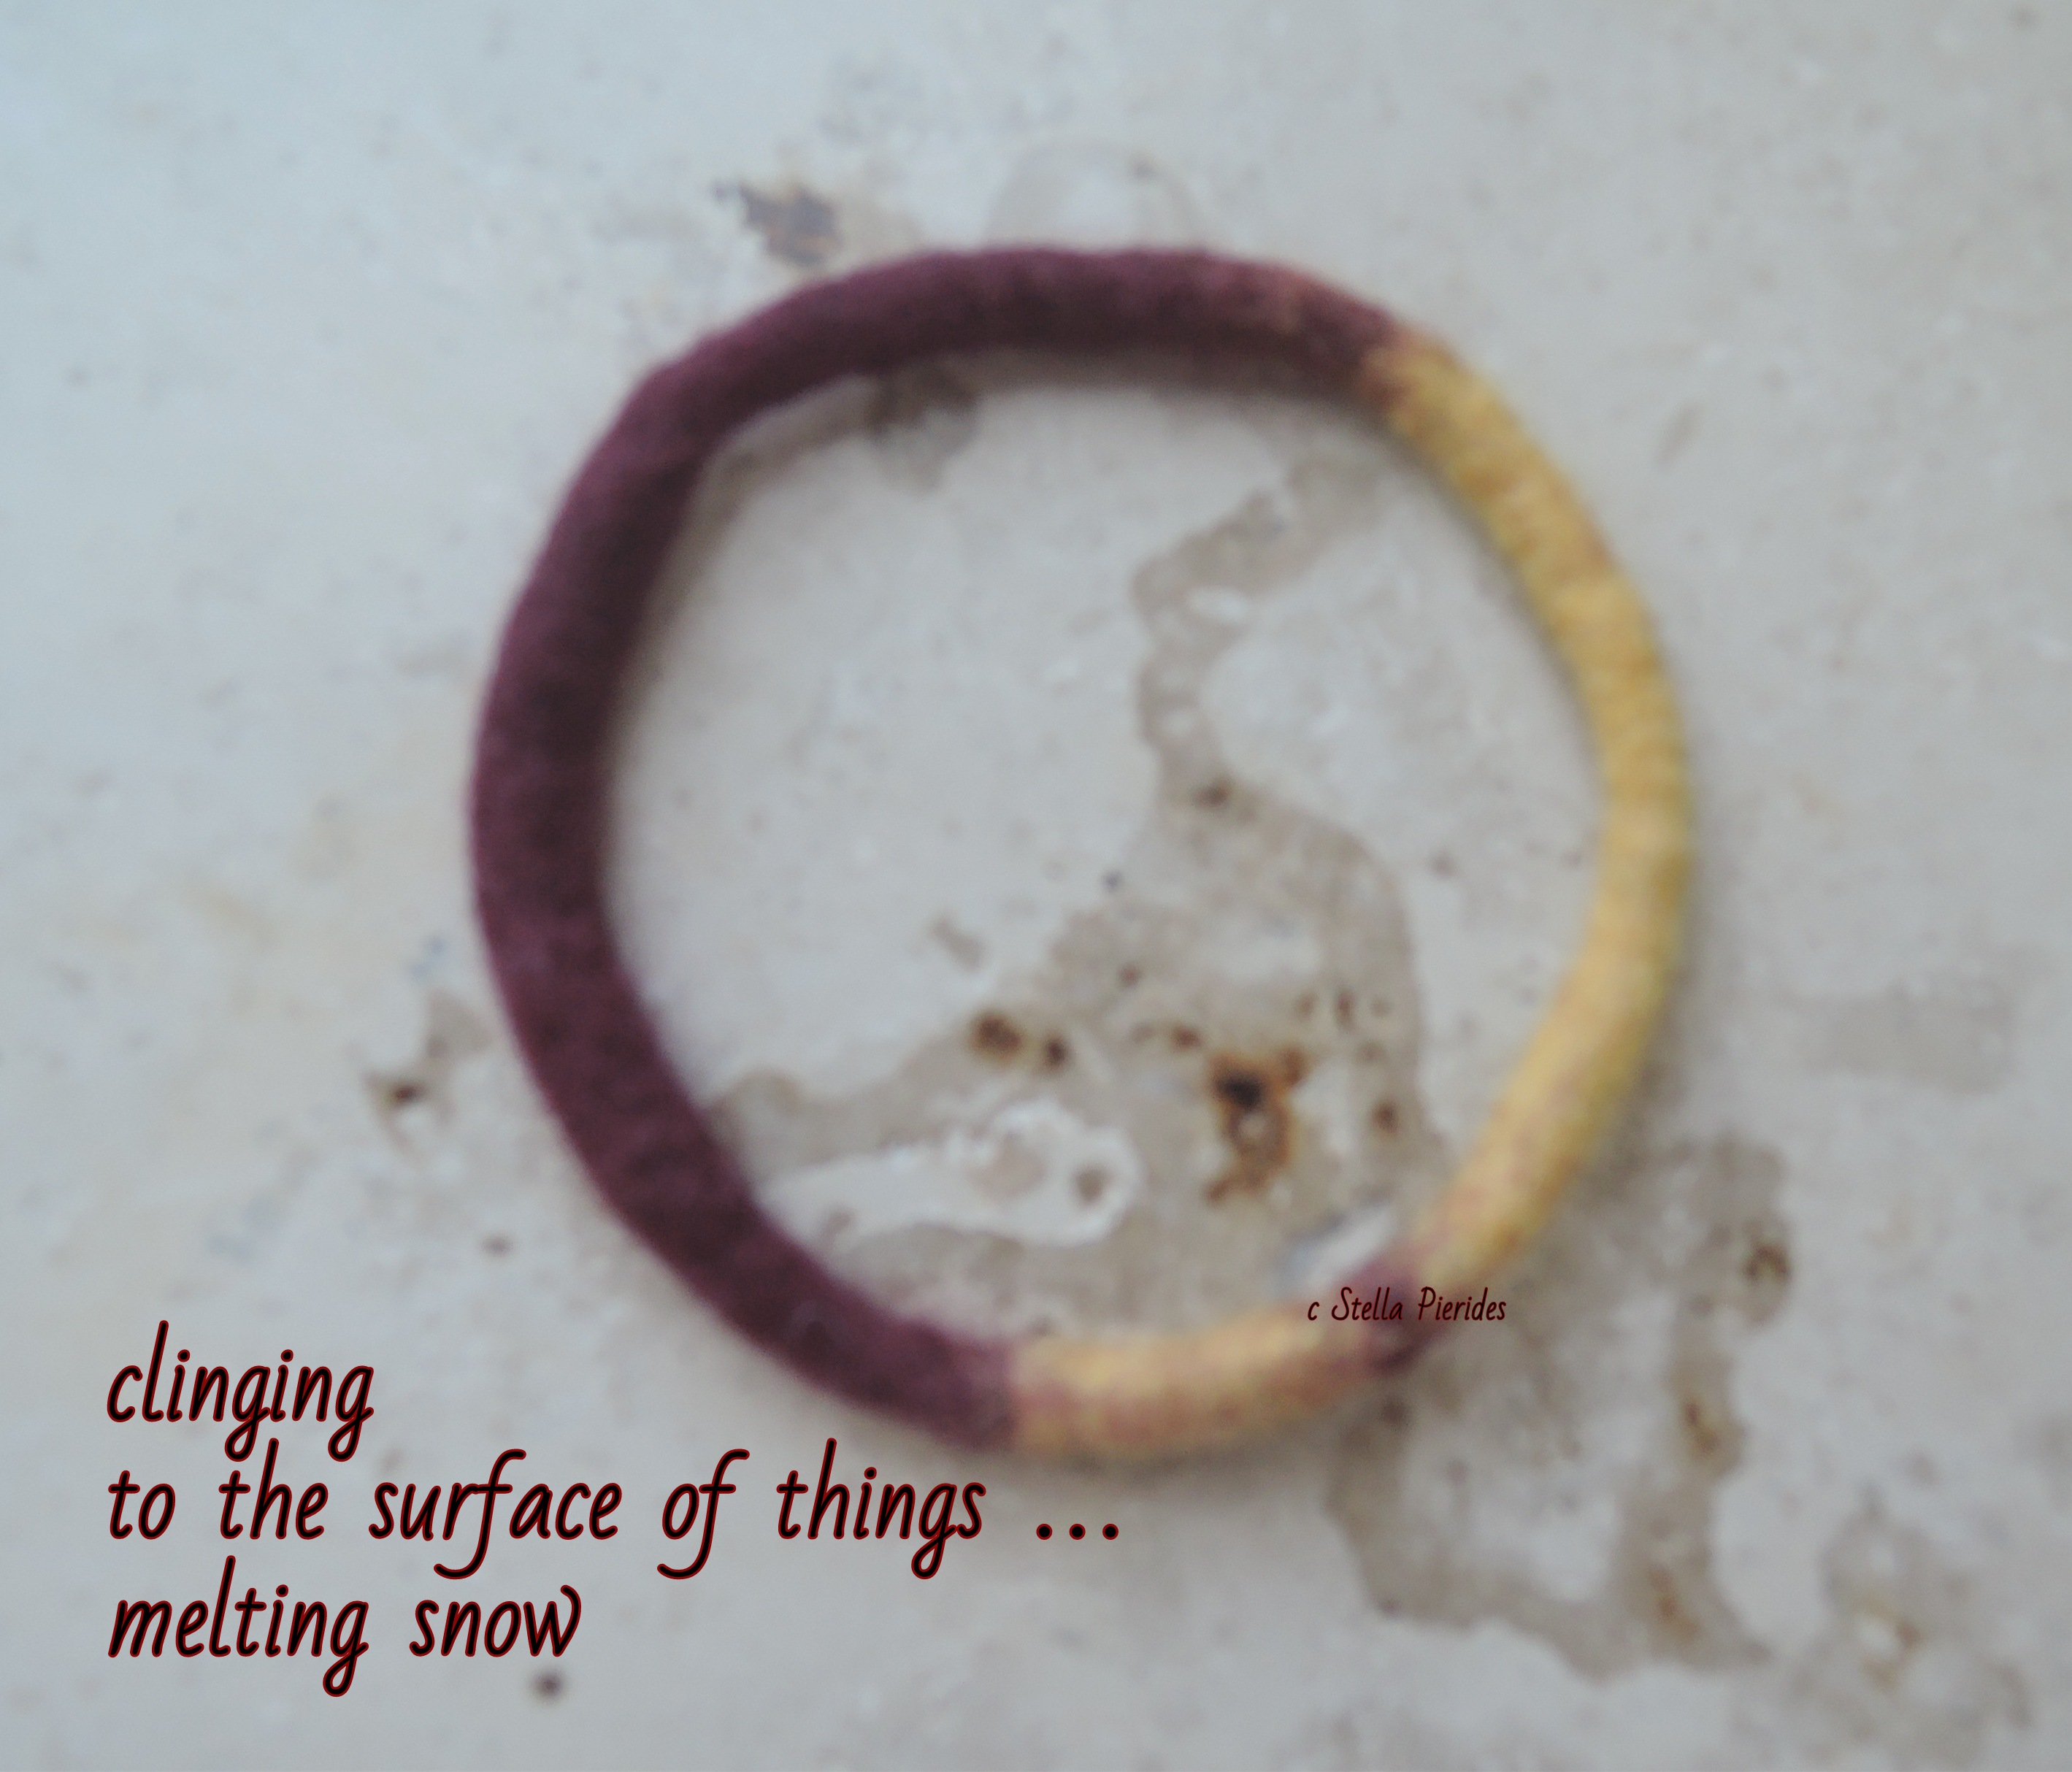 bracelet,haiga,haikufeltings,